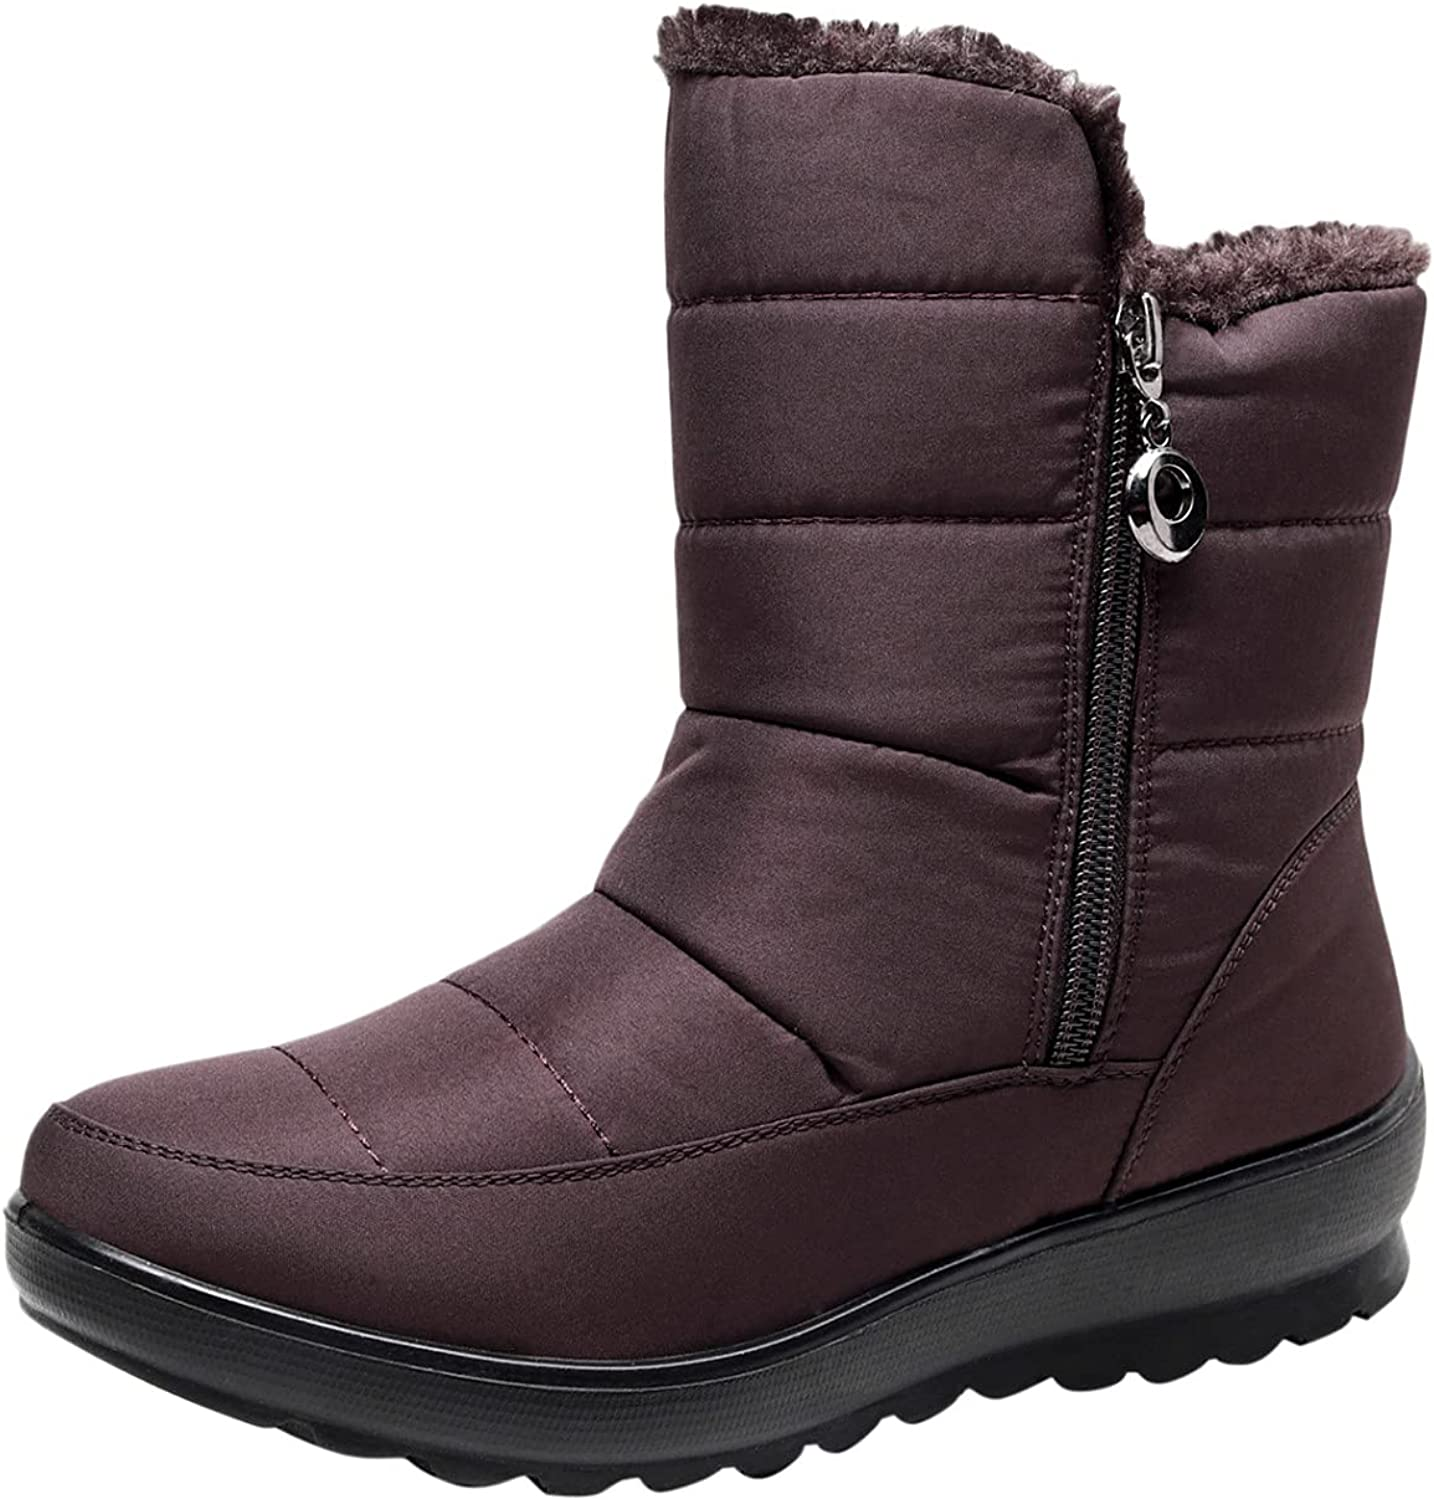 Warm Snow Boots for Womens Faux Fur Warm Thermal Waterproof Outdoor Walking Shoes Cold Weather Snow Winter Rubber Sole Mid Calf Boots GNiwerb